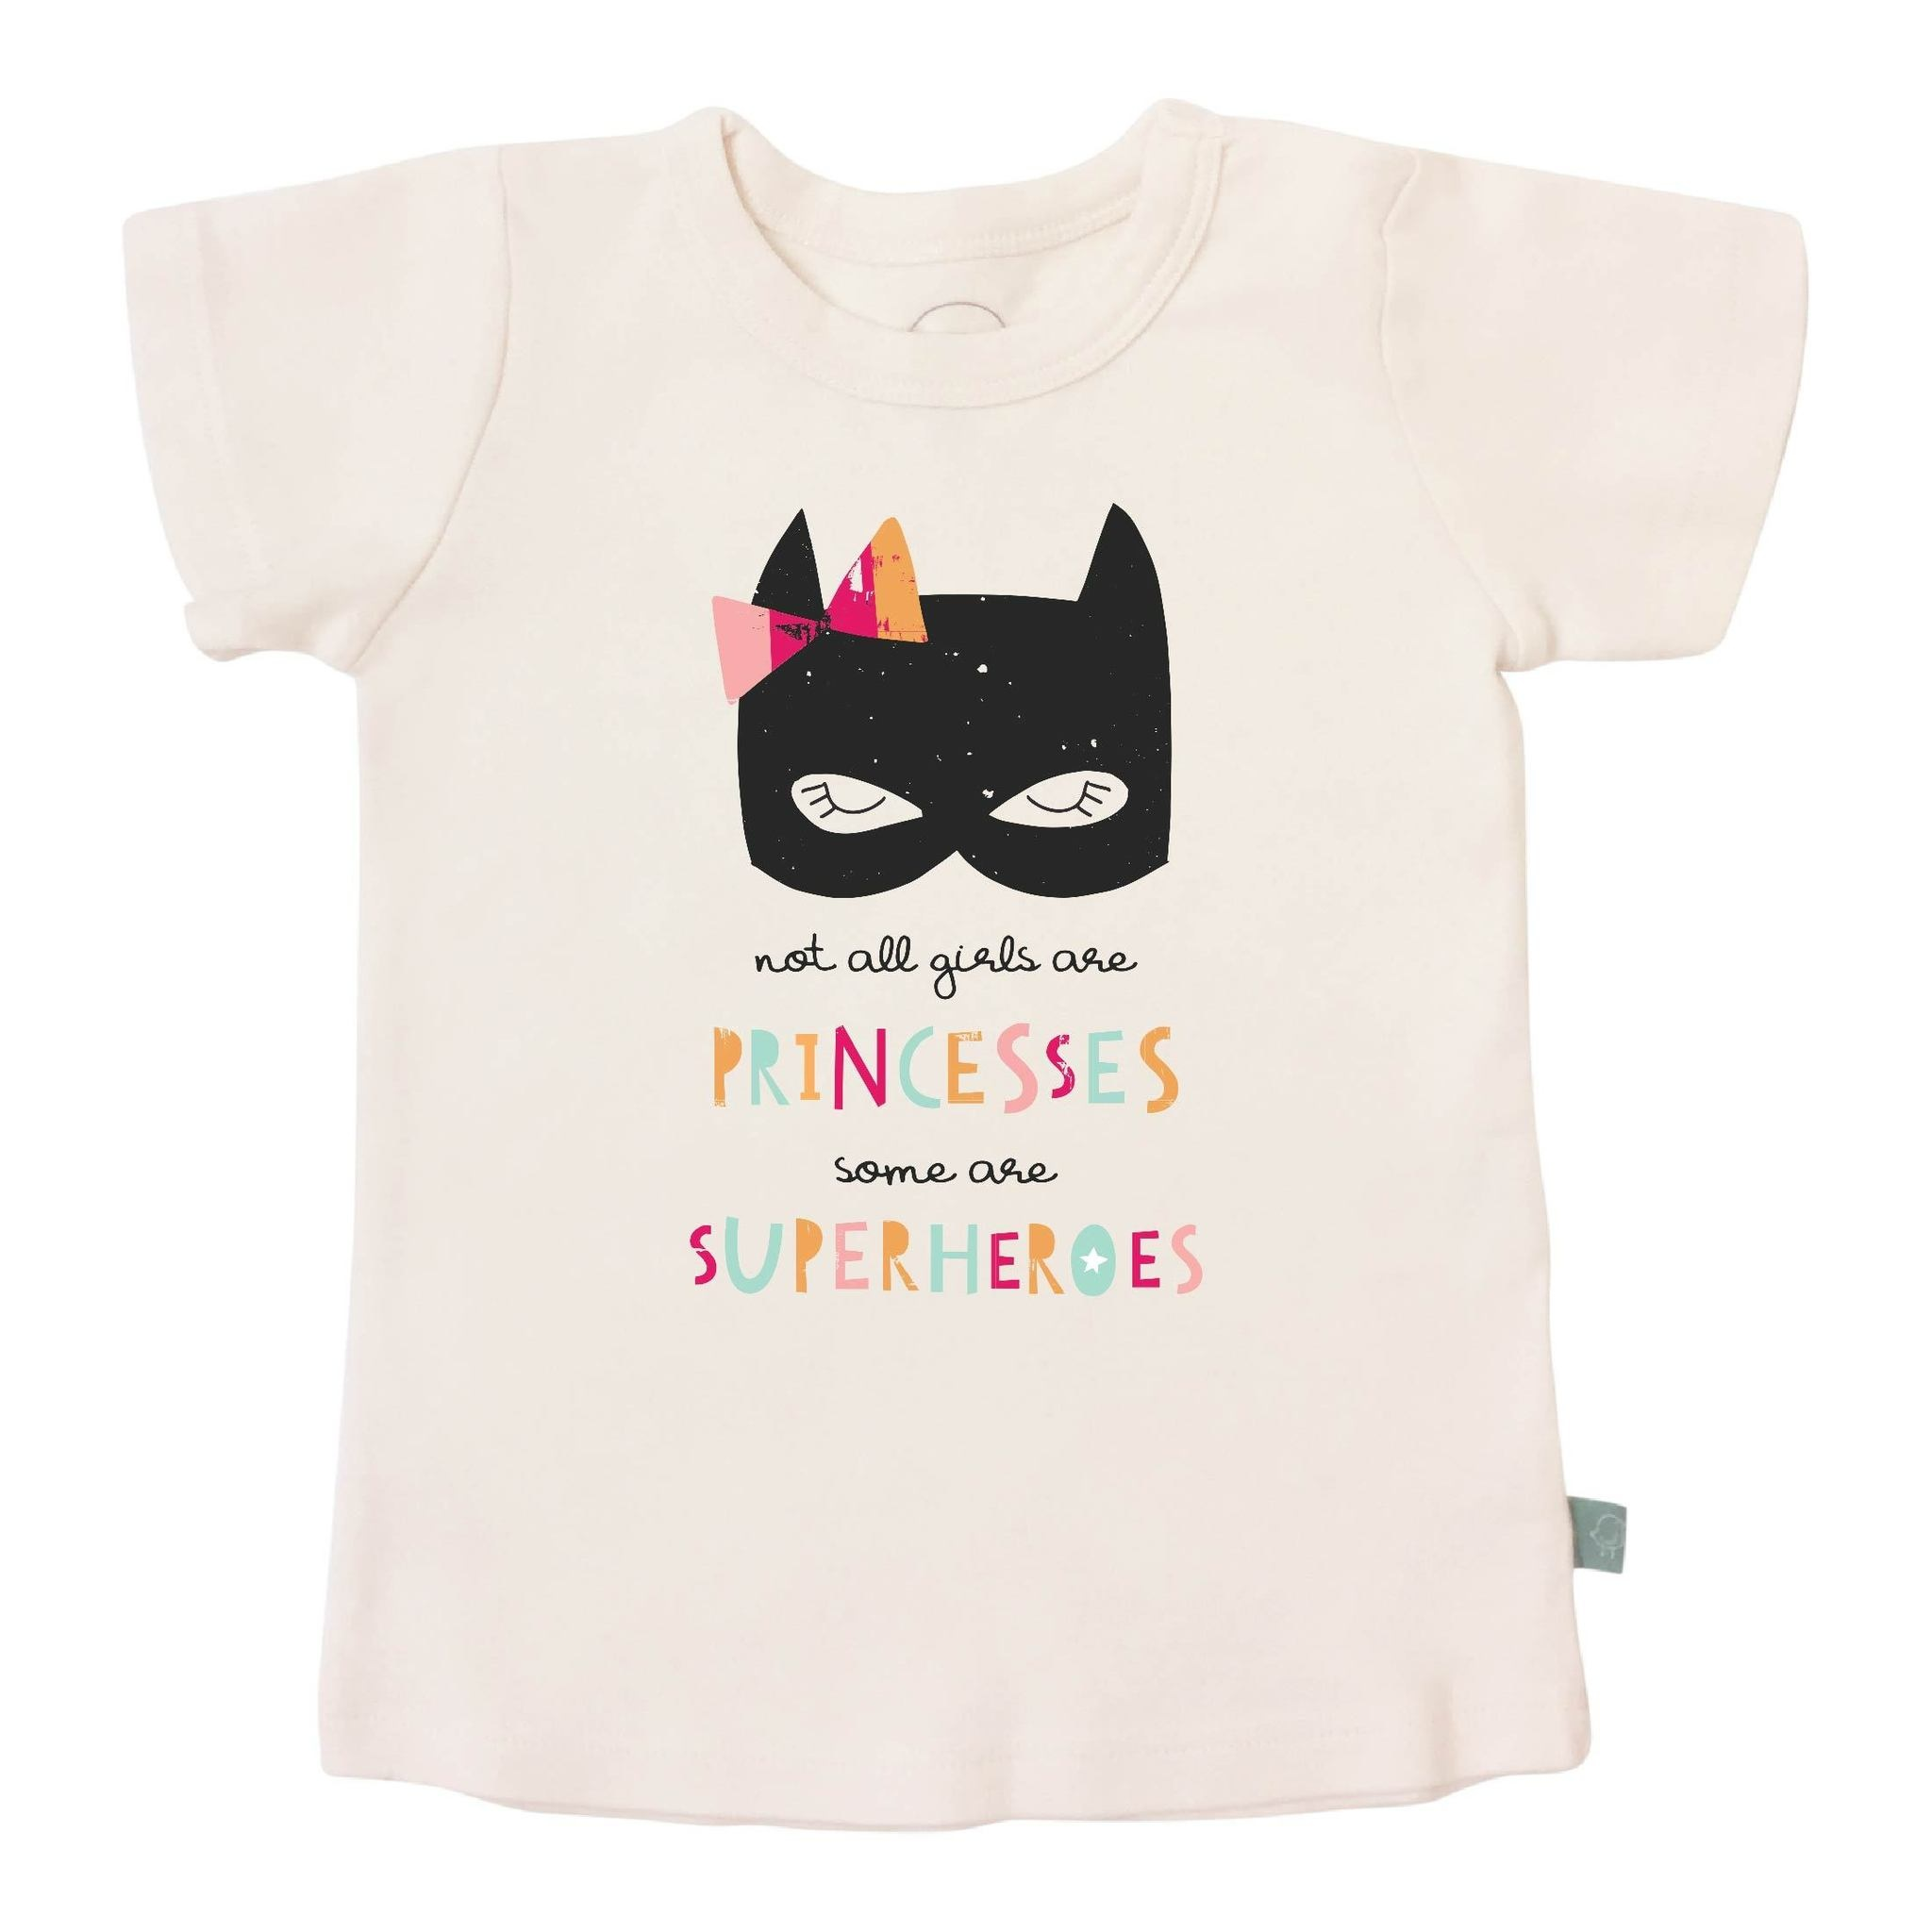 Finn + Emma finn + emma Graphic Tee - Superhero Princess